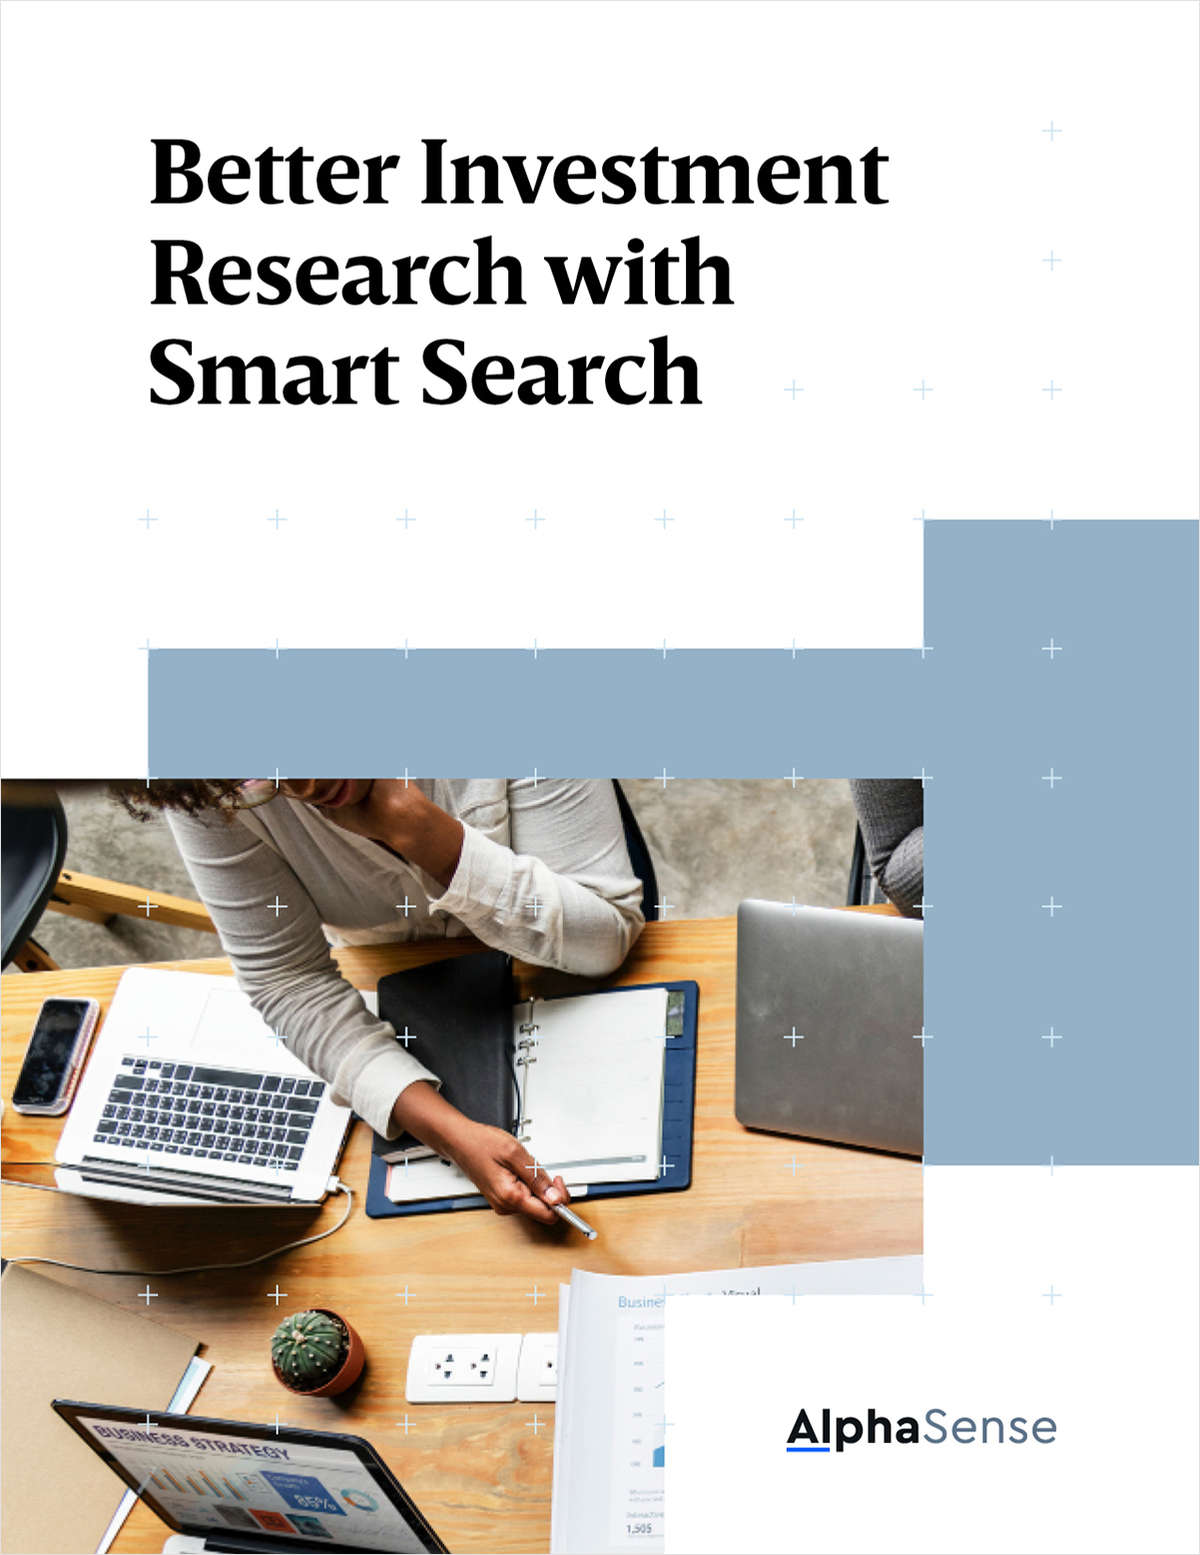 Better Investment Research with Smart Search